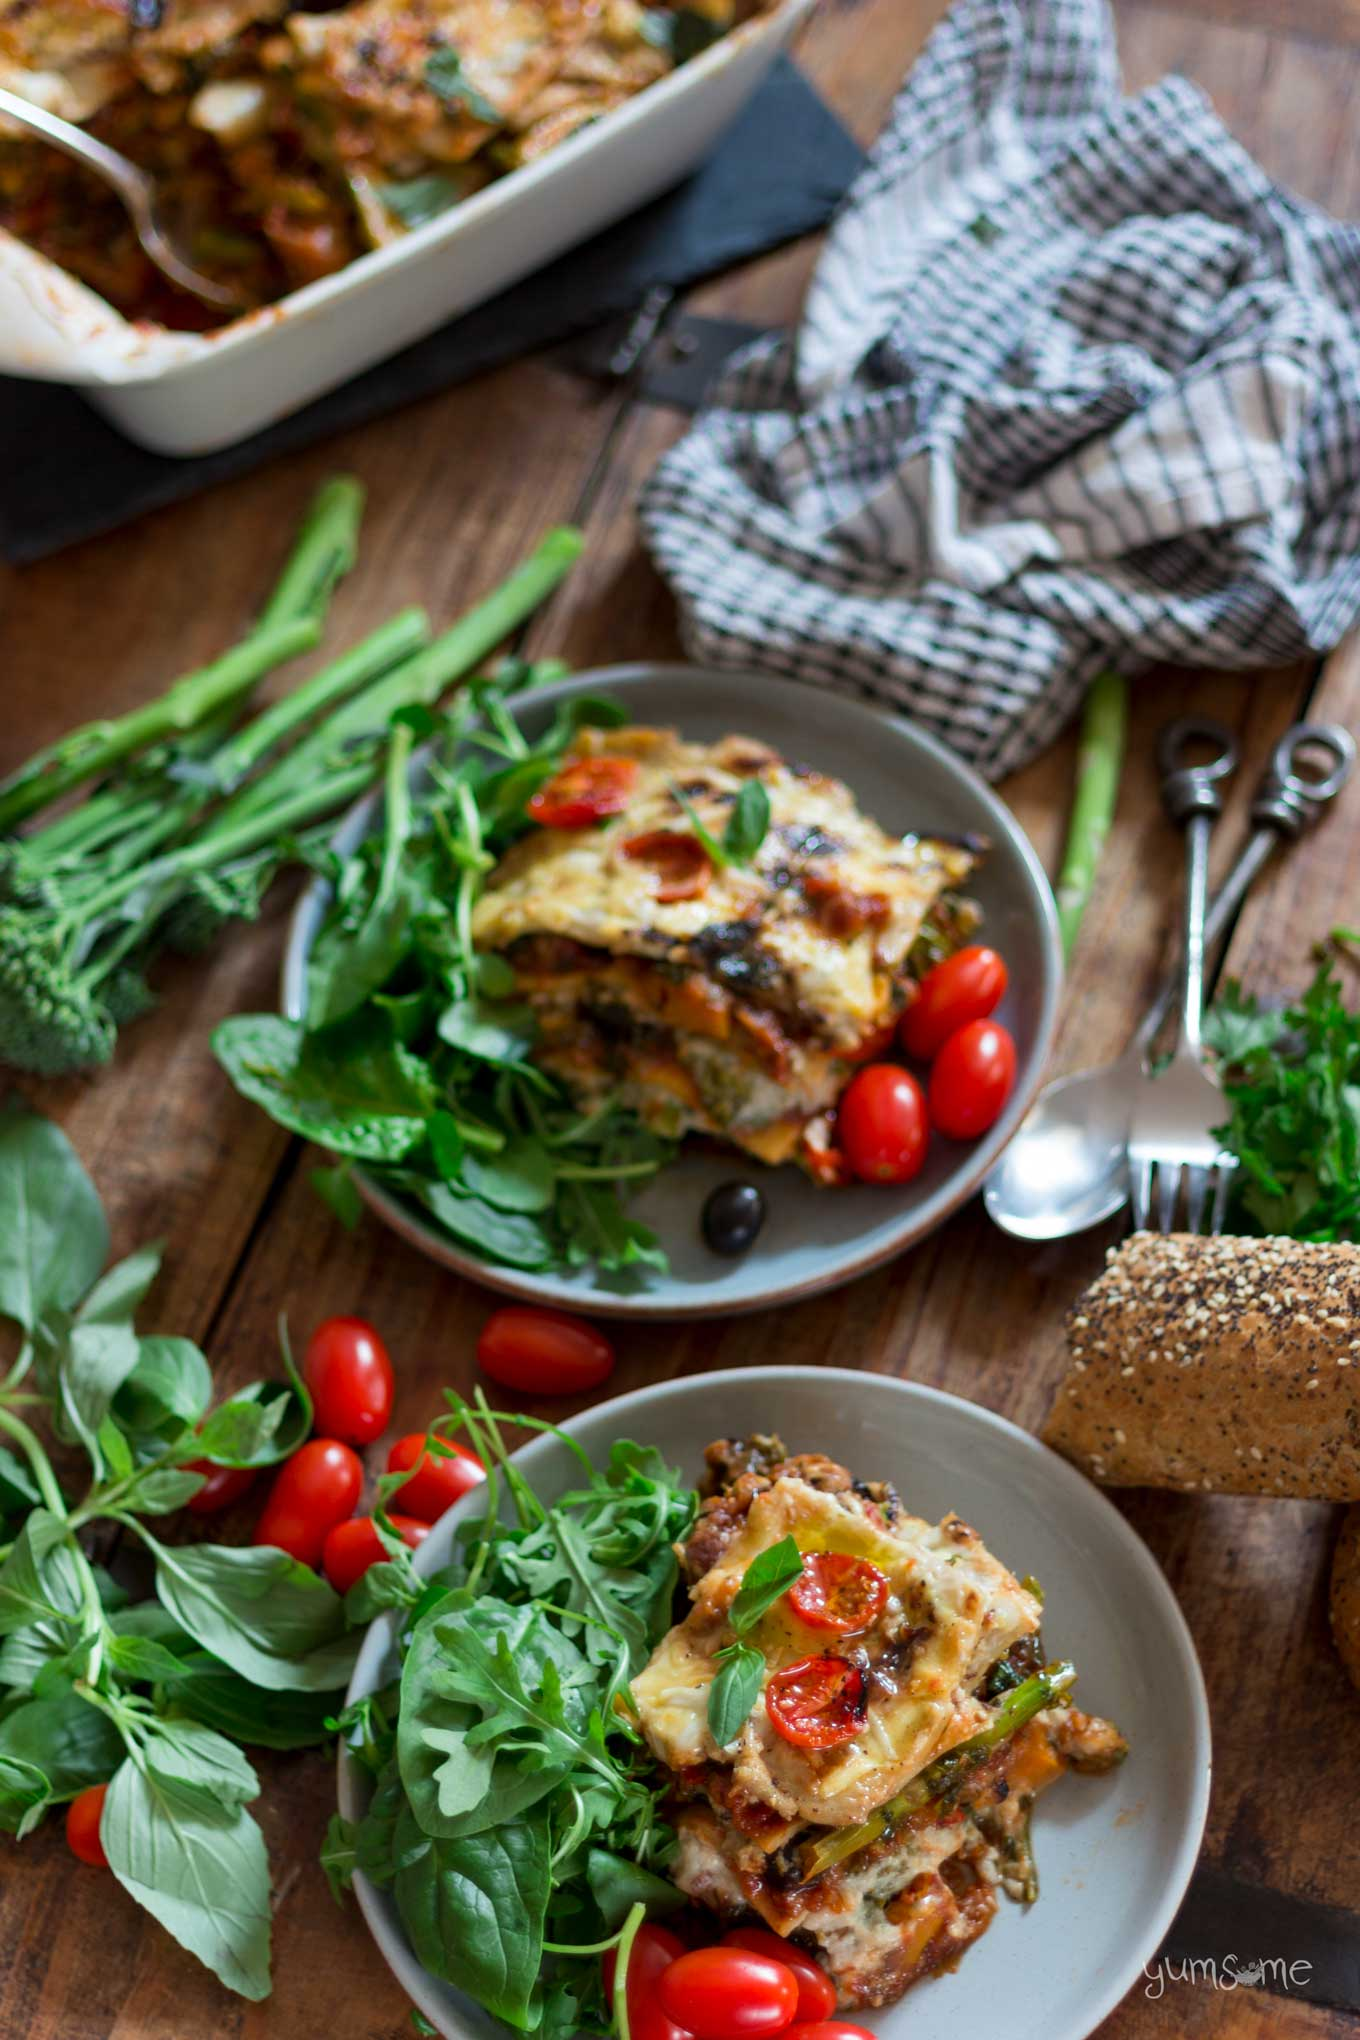 overhead shot of two plates of loaded vegan lasagne with green salad, baby plum tomatoes, tenderstem broccoli, basil, and some bread | yumsome.com